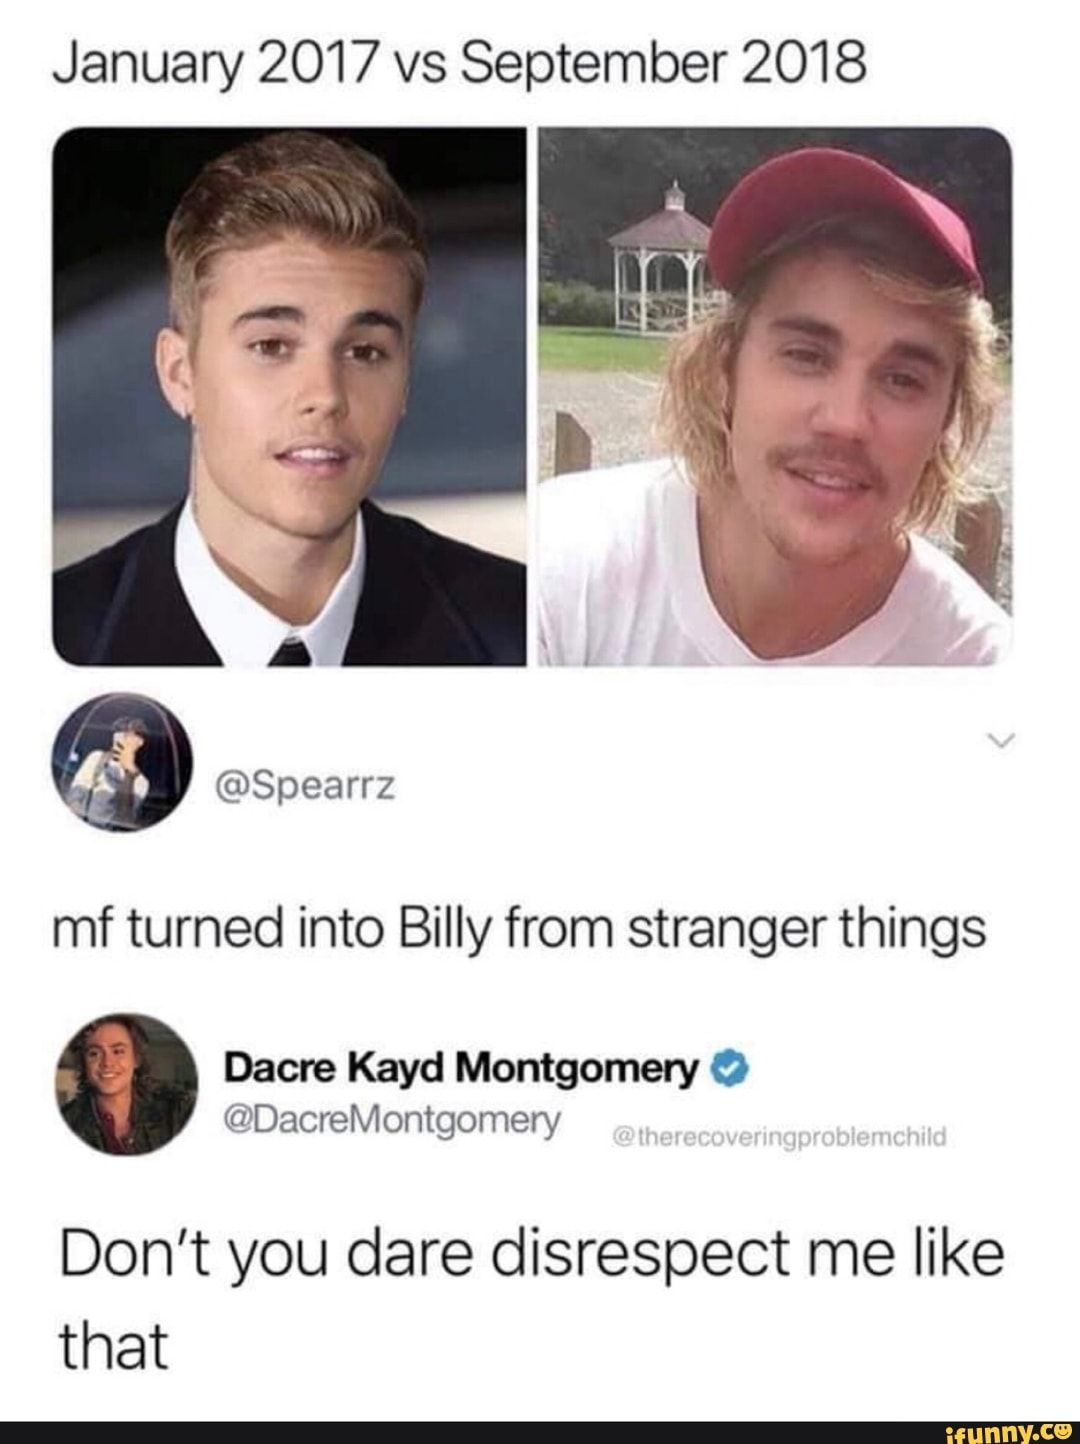 January 2017 vs September 2018 mf turned into Billy from stranger things @DacreMontgomery Don't you dare disrespect me like that - iFunny :)